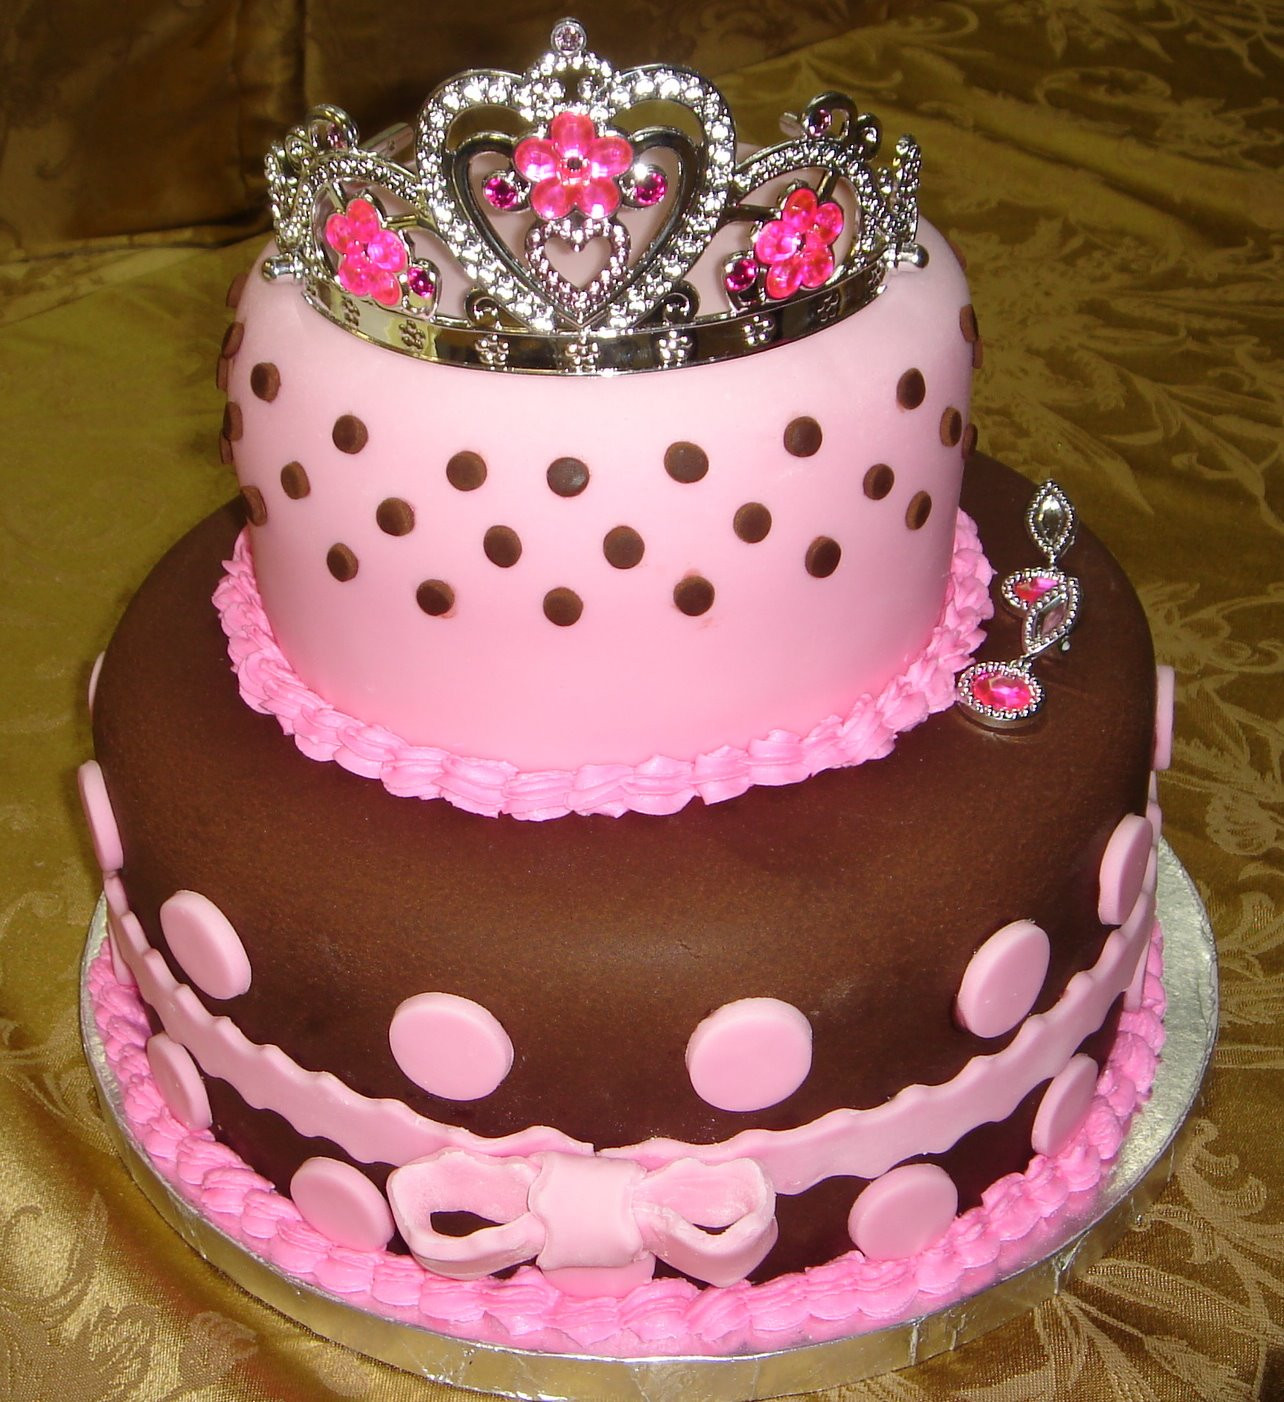 Best ideas about Birthday Cake Ideas For Girls . Save or Pin cake birthday kids fondant buttercream princess castle Now.